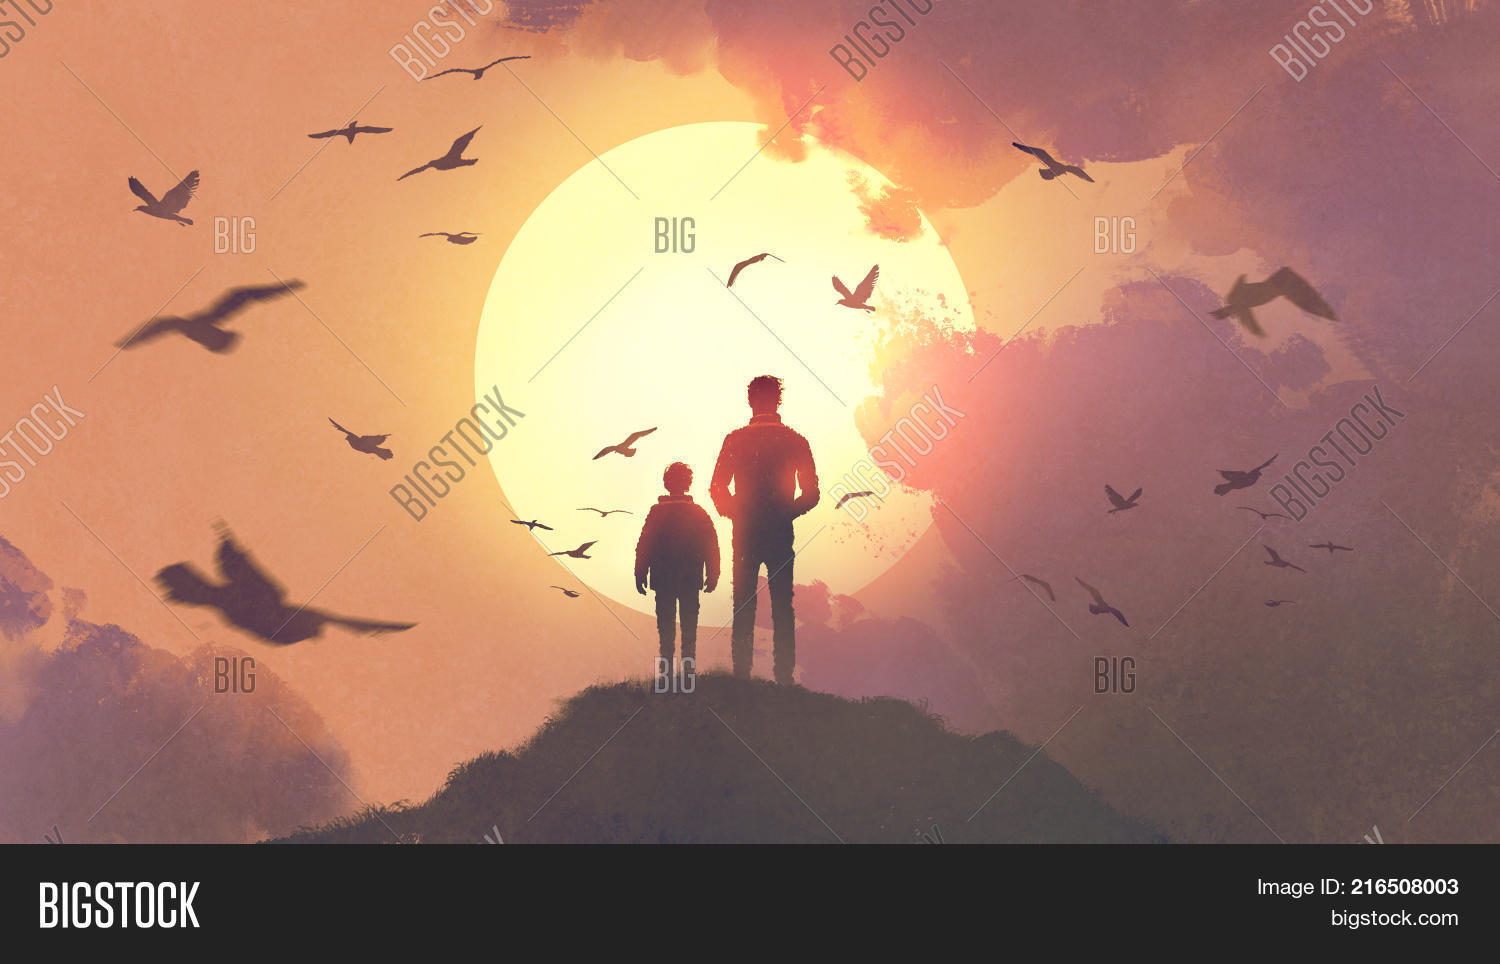 Silhouette of father and son standing on the mountain looking at the sun rising in the